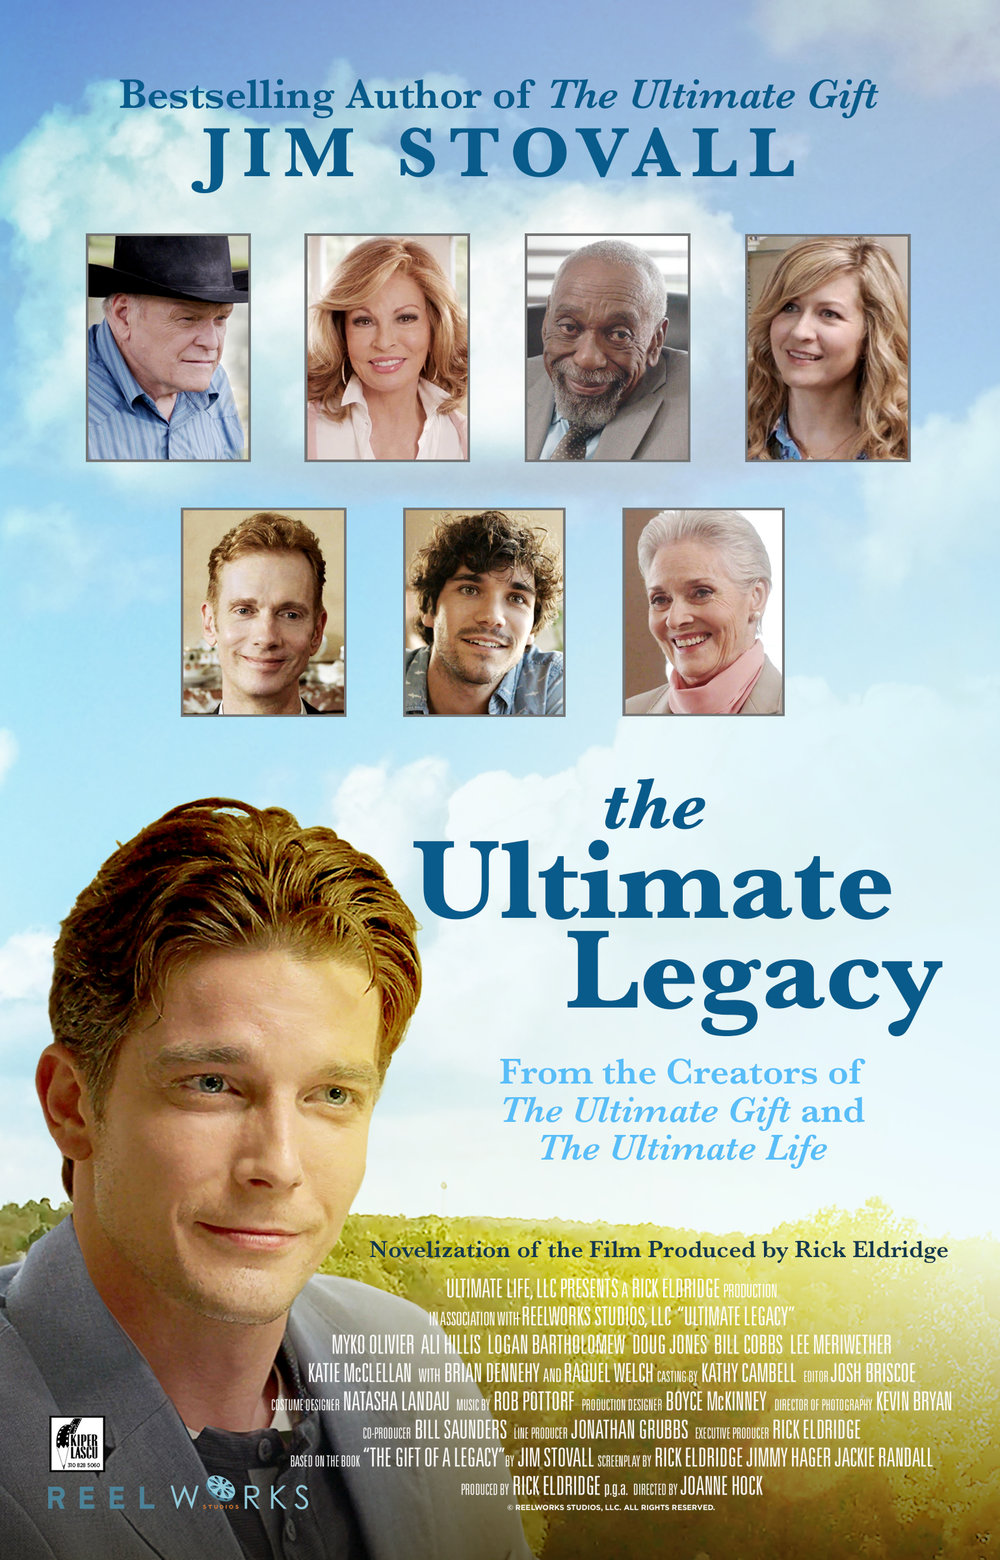 The Ultimate Legacy - By jim stovall